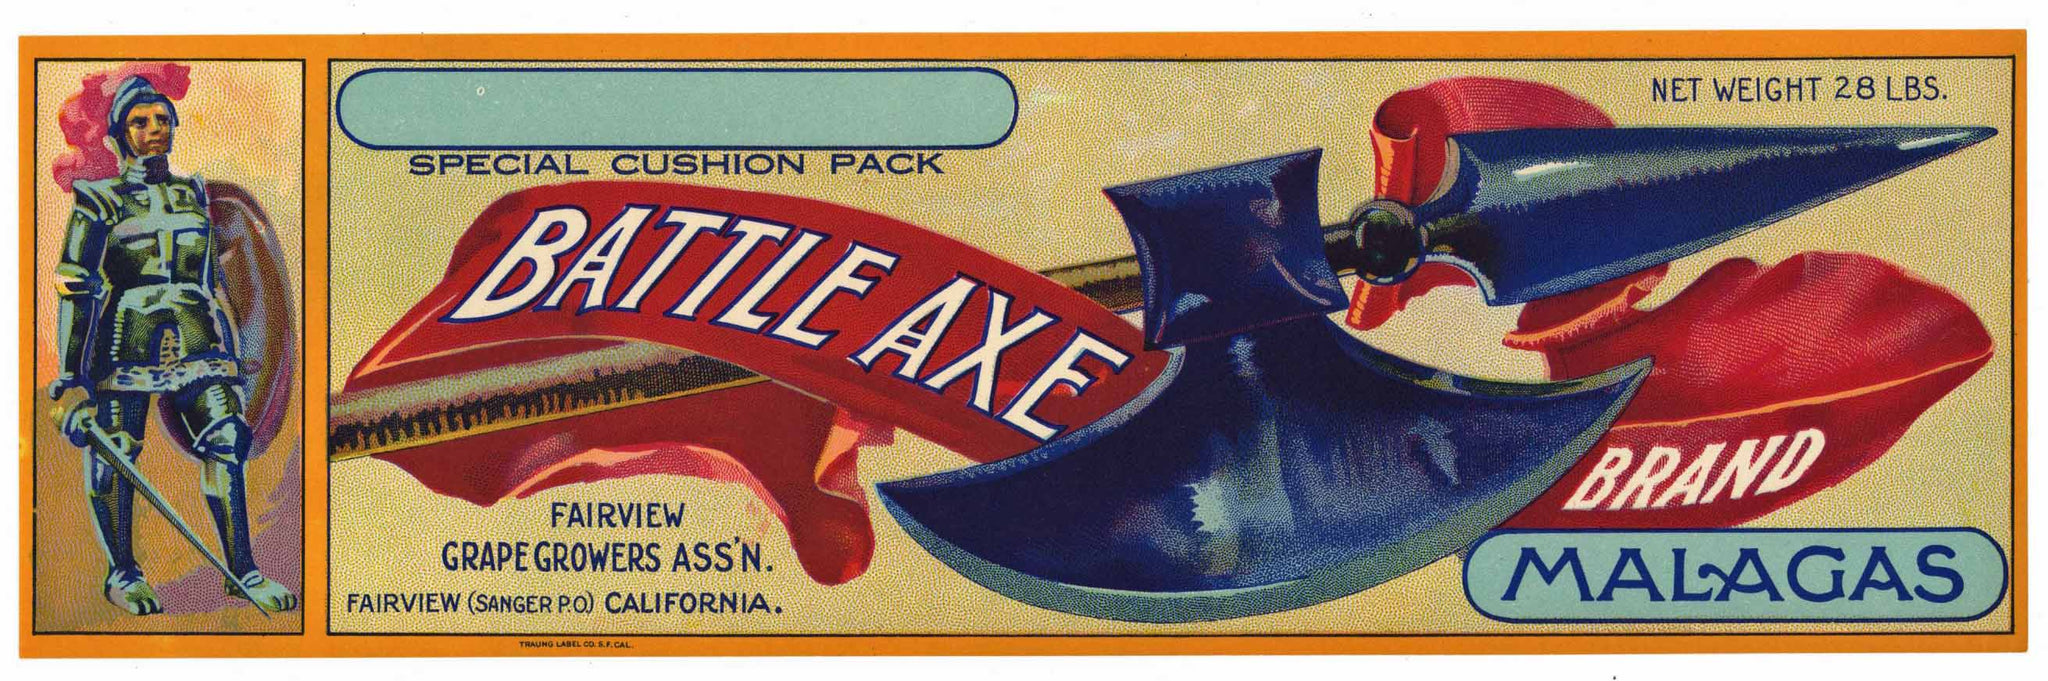 Battle Axe Brand Vintage Sanger Grape Crate Label